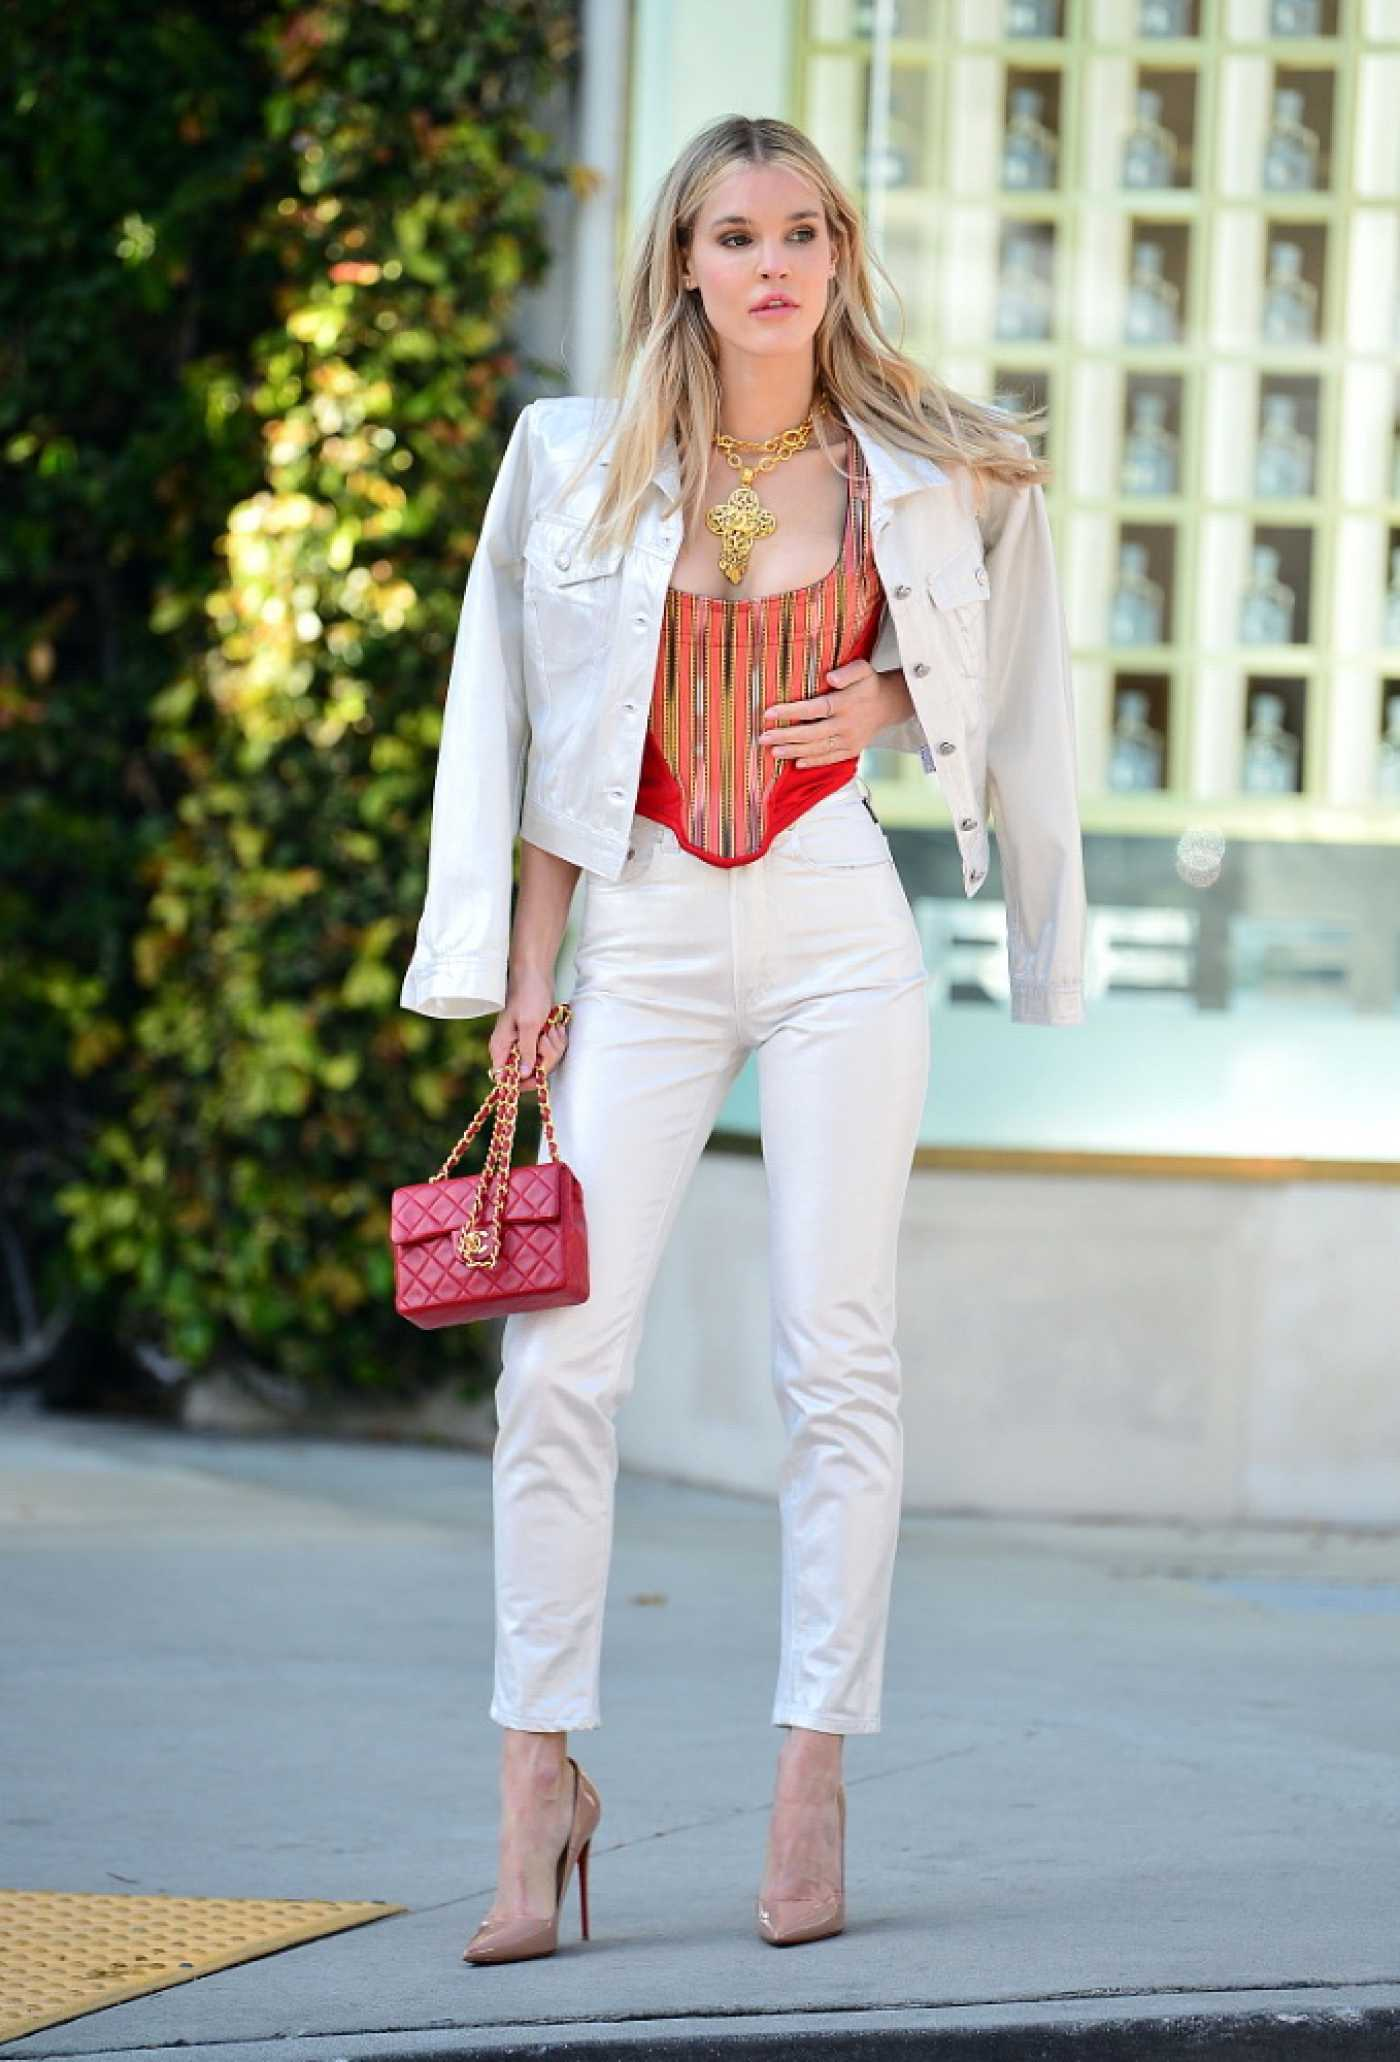 Joy Corrigan in a White Suit Does a Fashion Photoshoot in Beverly Hills 03/24/2021